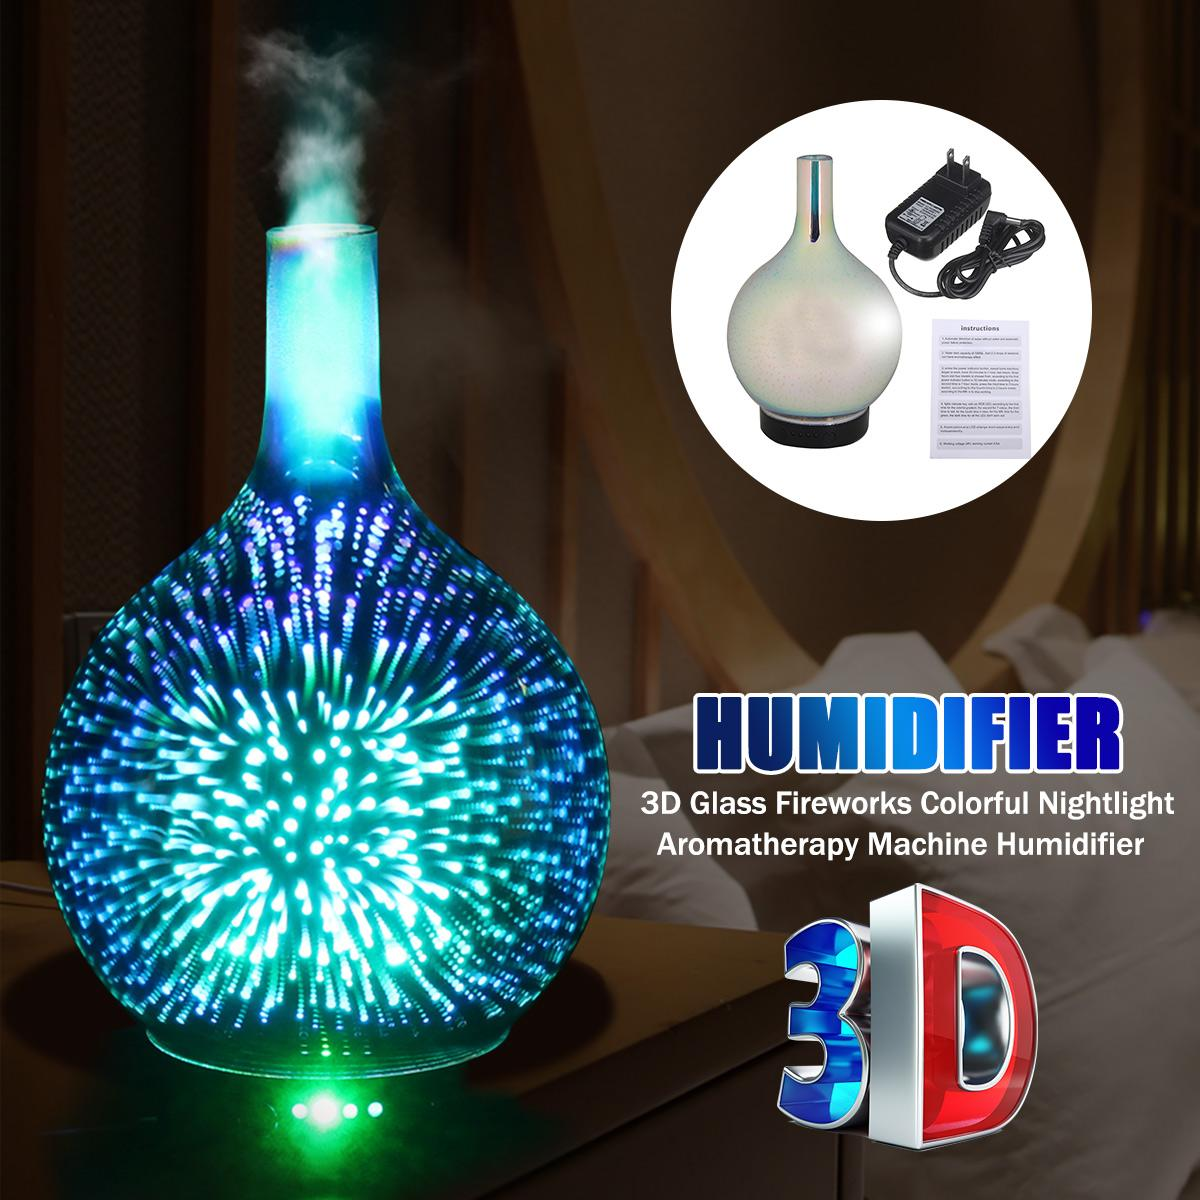 Air Humidifier 3D LED Night Light Fireworks Glass Vase Aroma Essential Oil Diffuser Electric Ultrasonic Mist Maker For Home RoomAir Humidifier 3D LED Night Light Fireworks Glass Vase Aroma Essential Oil Diffuser Electric Ultrasonic Mist Maker For Home Room